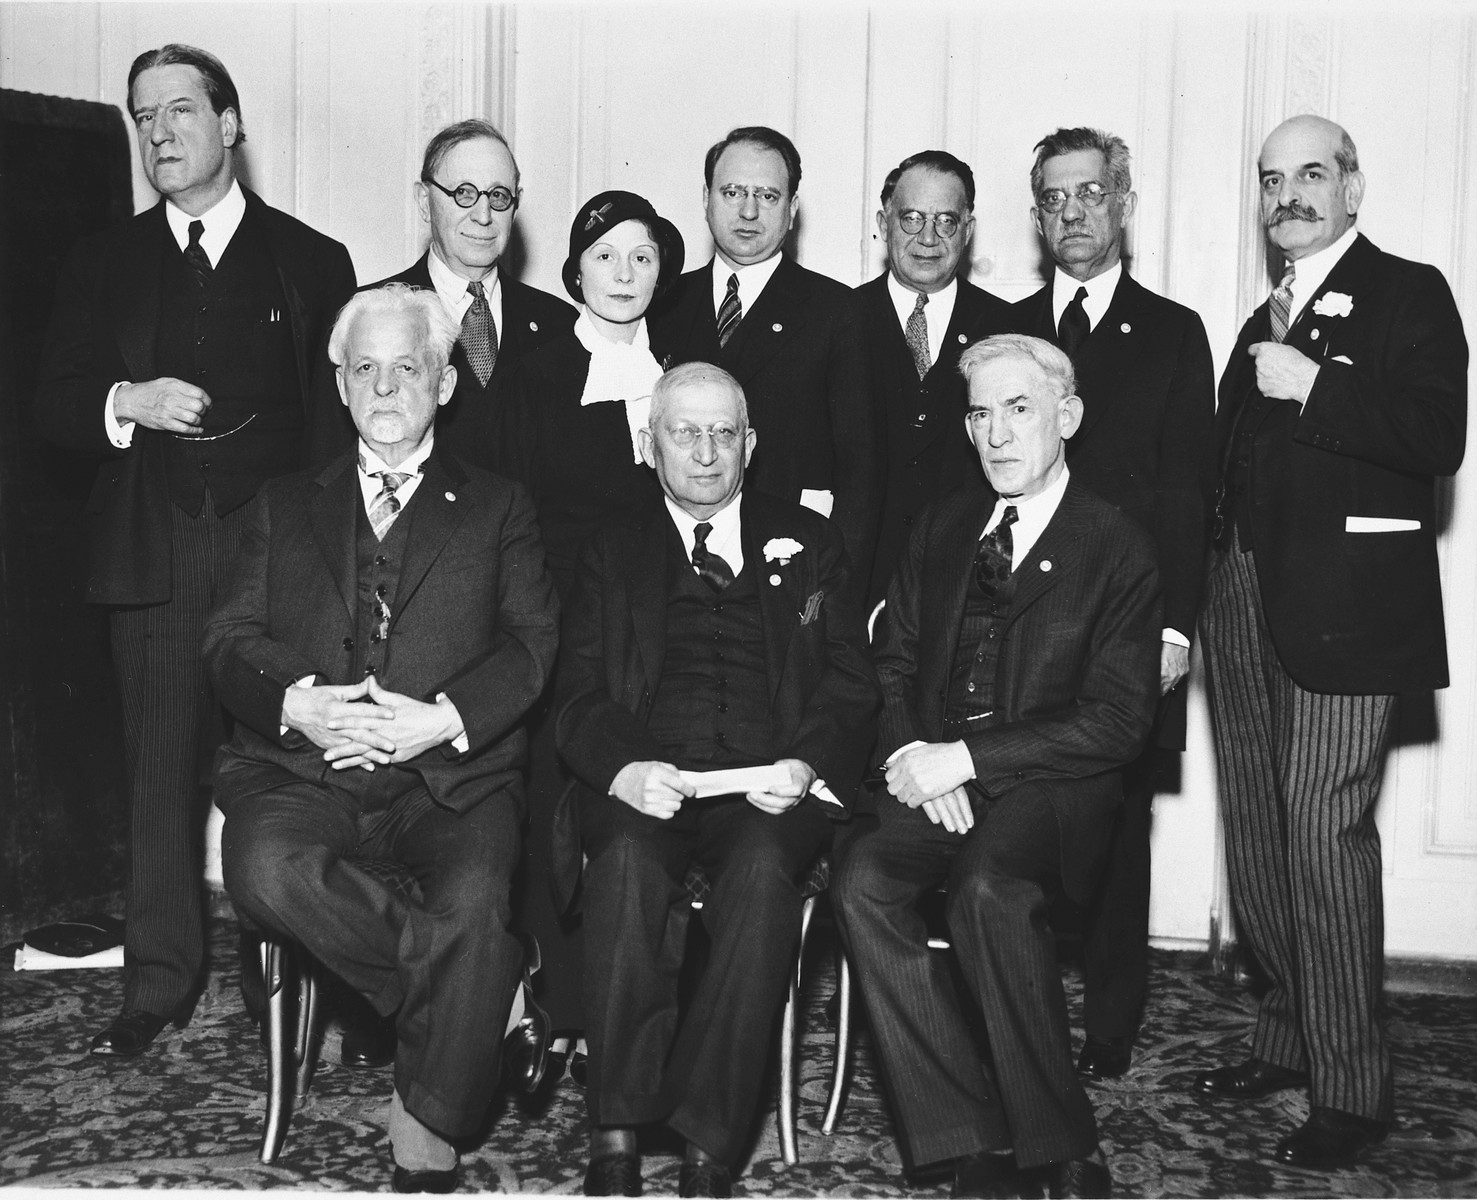 American Jewish leaders meet at the Hotel Astor to launch the 1933 American Palestine Appeal.  Pictured left to right.  Seated: Z.H. Maslansky, Dr. Cyrus Adler, and Louis Lipsky, Chairman.  Standing: Dr. Stephen Wise, Judge Julian W. Mack, Mrs. Rose Halprin, Morris Rothenberg, Judge William M. Lewis, Dr. Samuel Schulman and Felix M. Warburg.